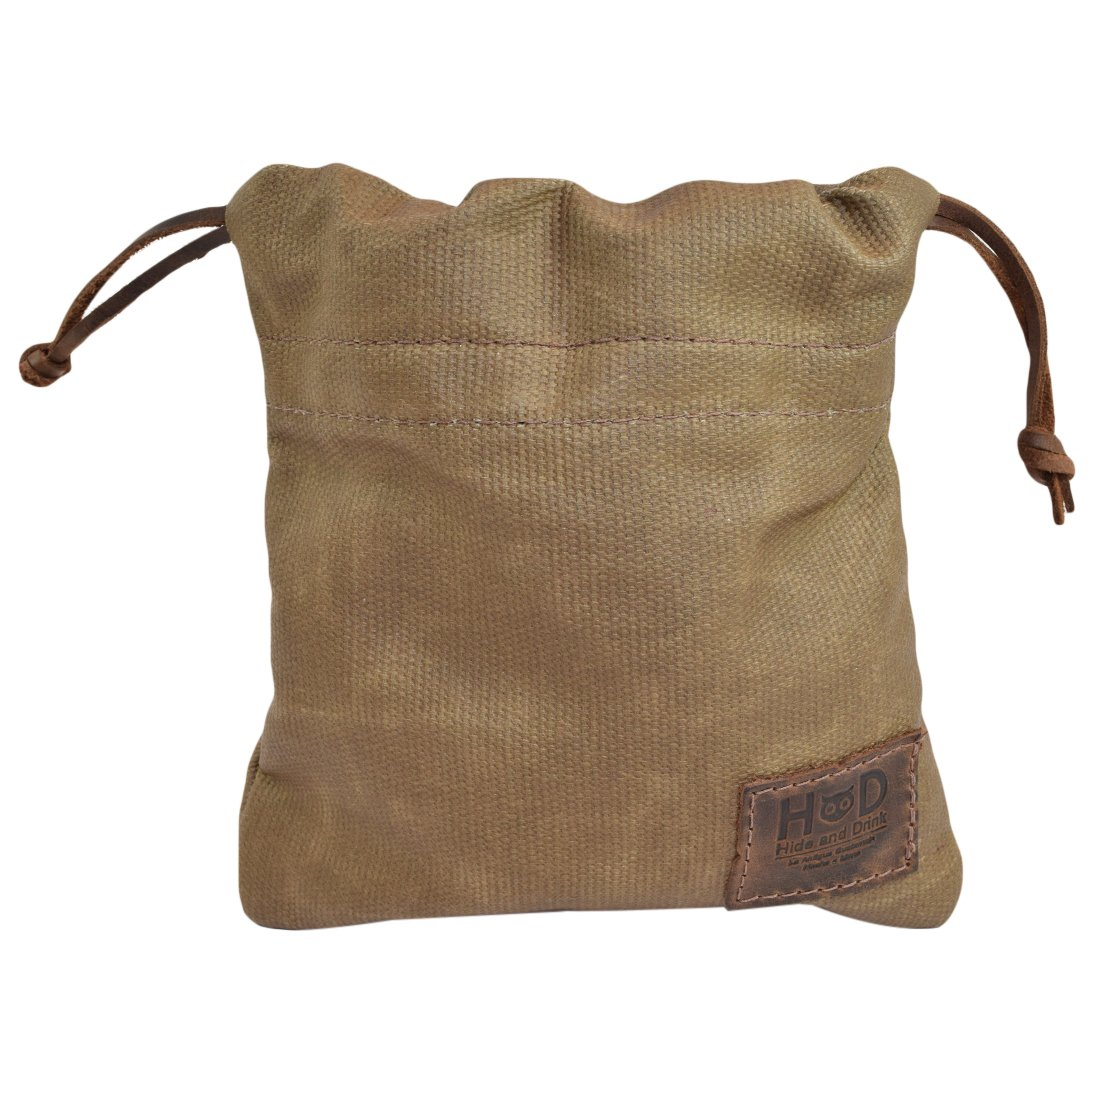 Hide & Drink Waxed Canvas Golf Valuables Field/Travel / Tech/Board Game Dice Pouch Handmade by Fatigue by Hide & Drink (Image #2)